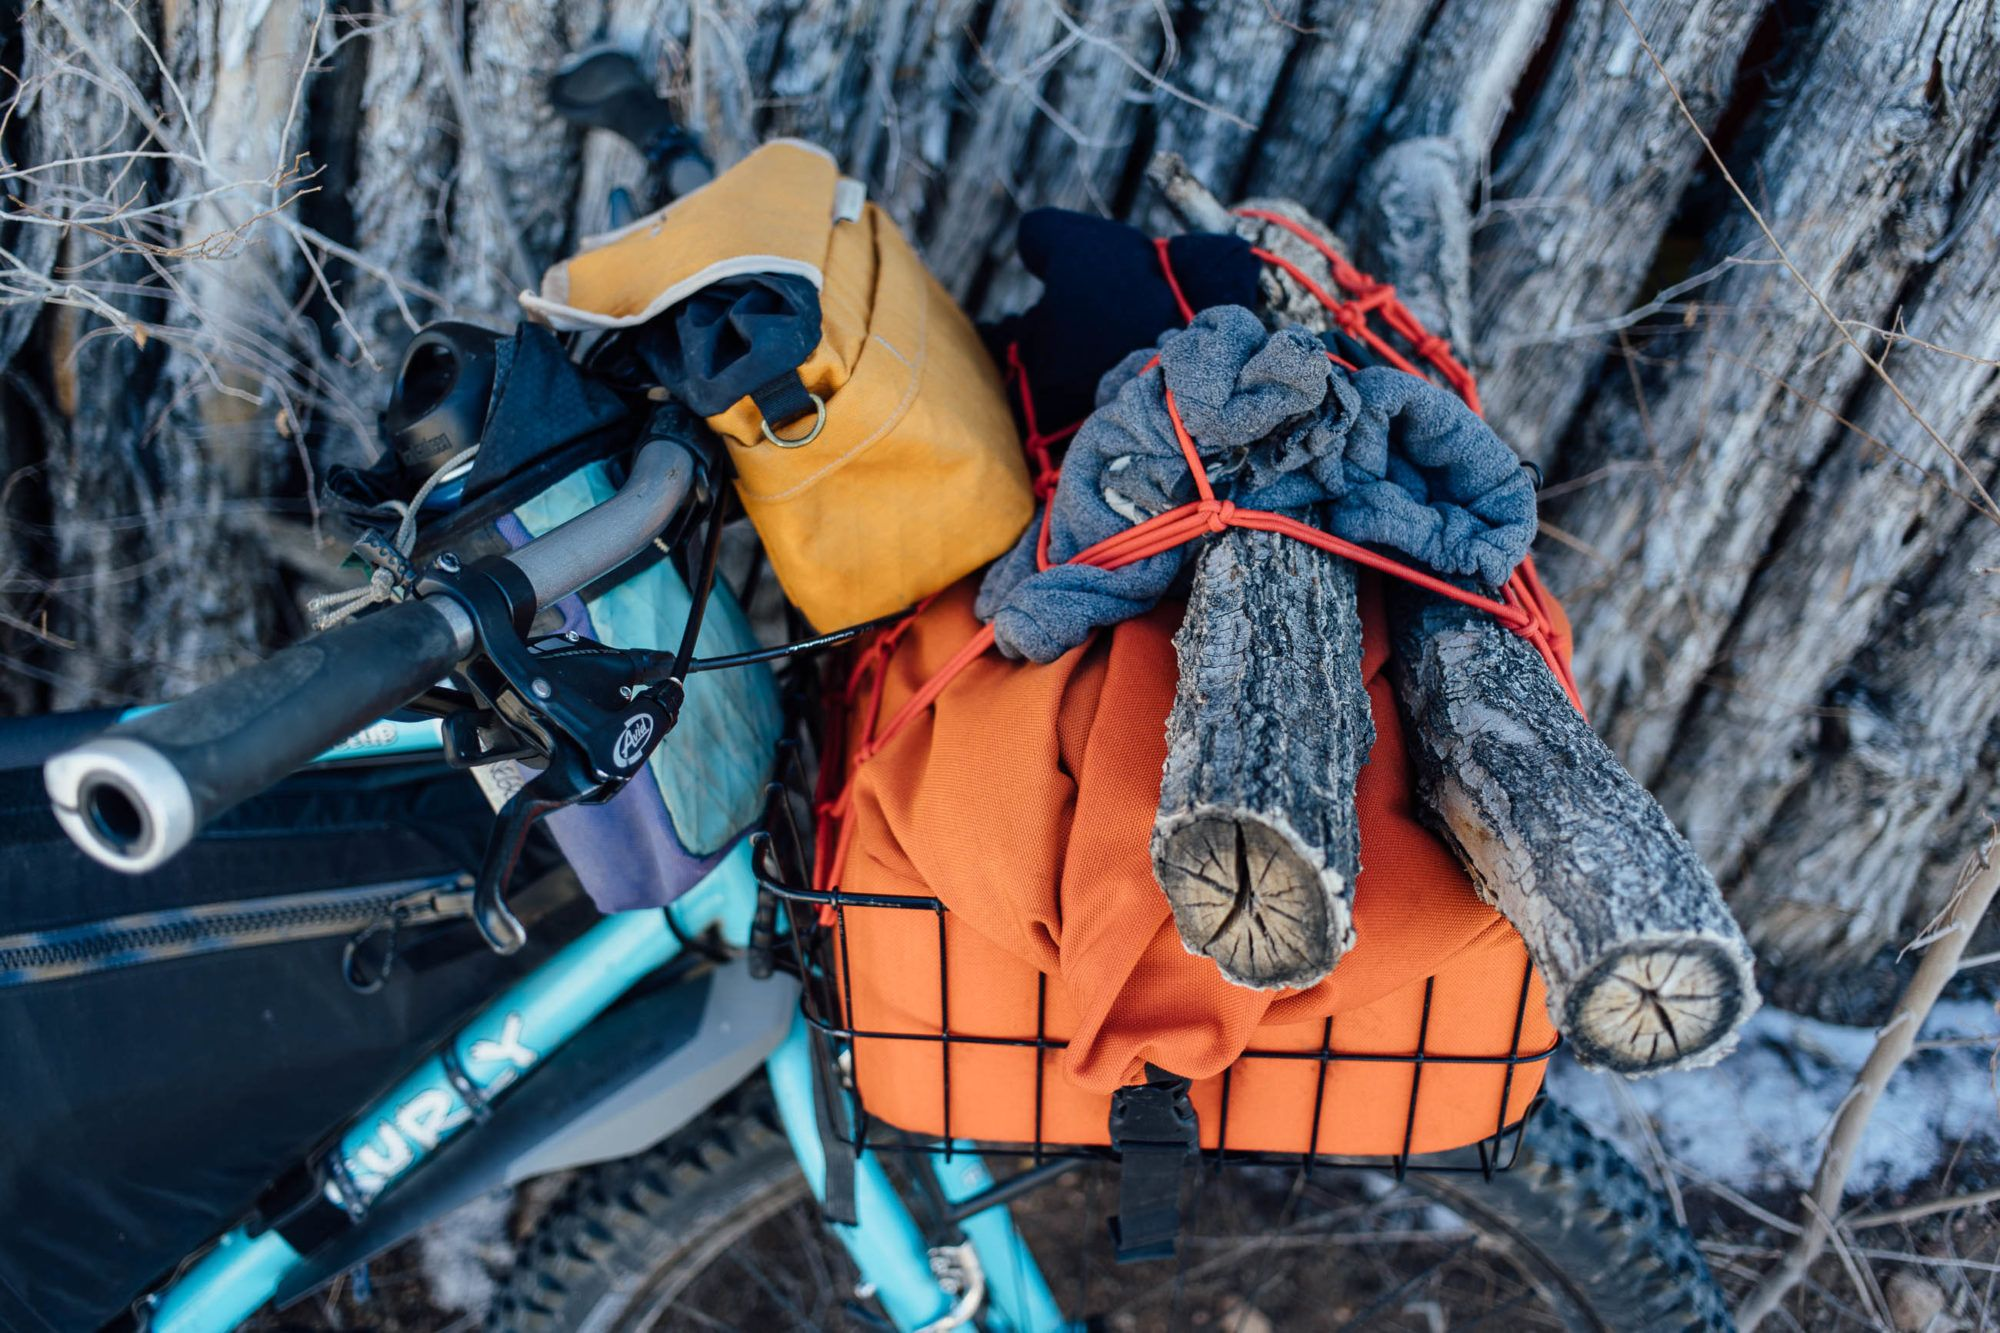 Surly Bridge Club Review Bikepacking Touring Bike Bike Design